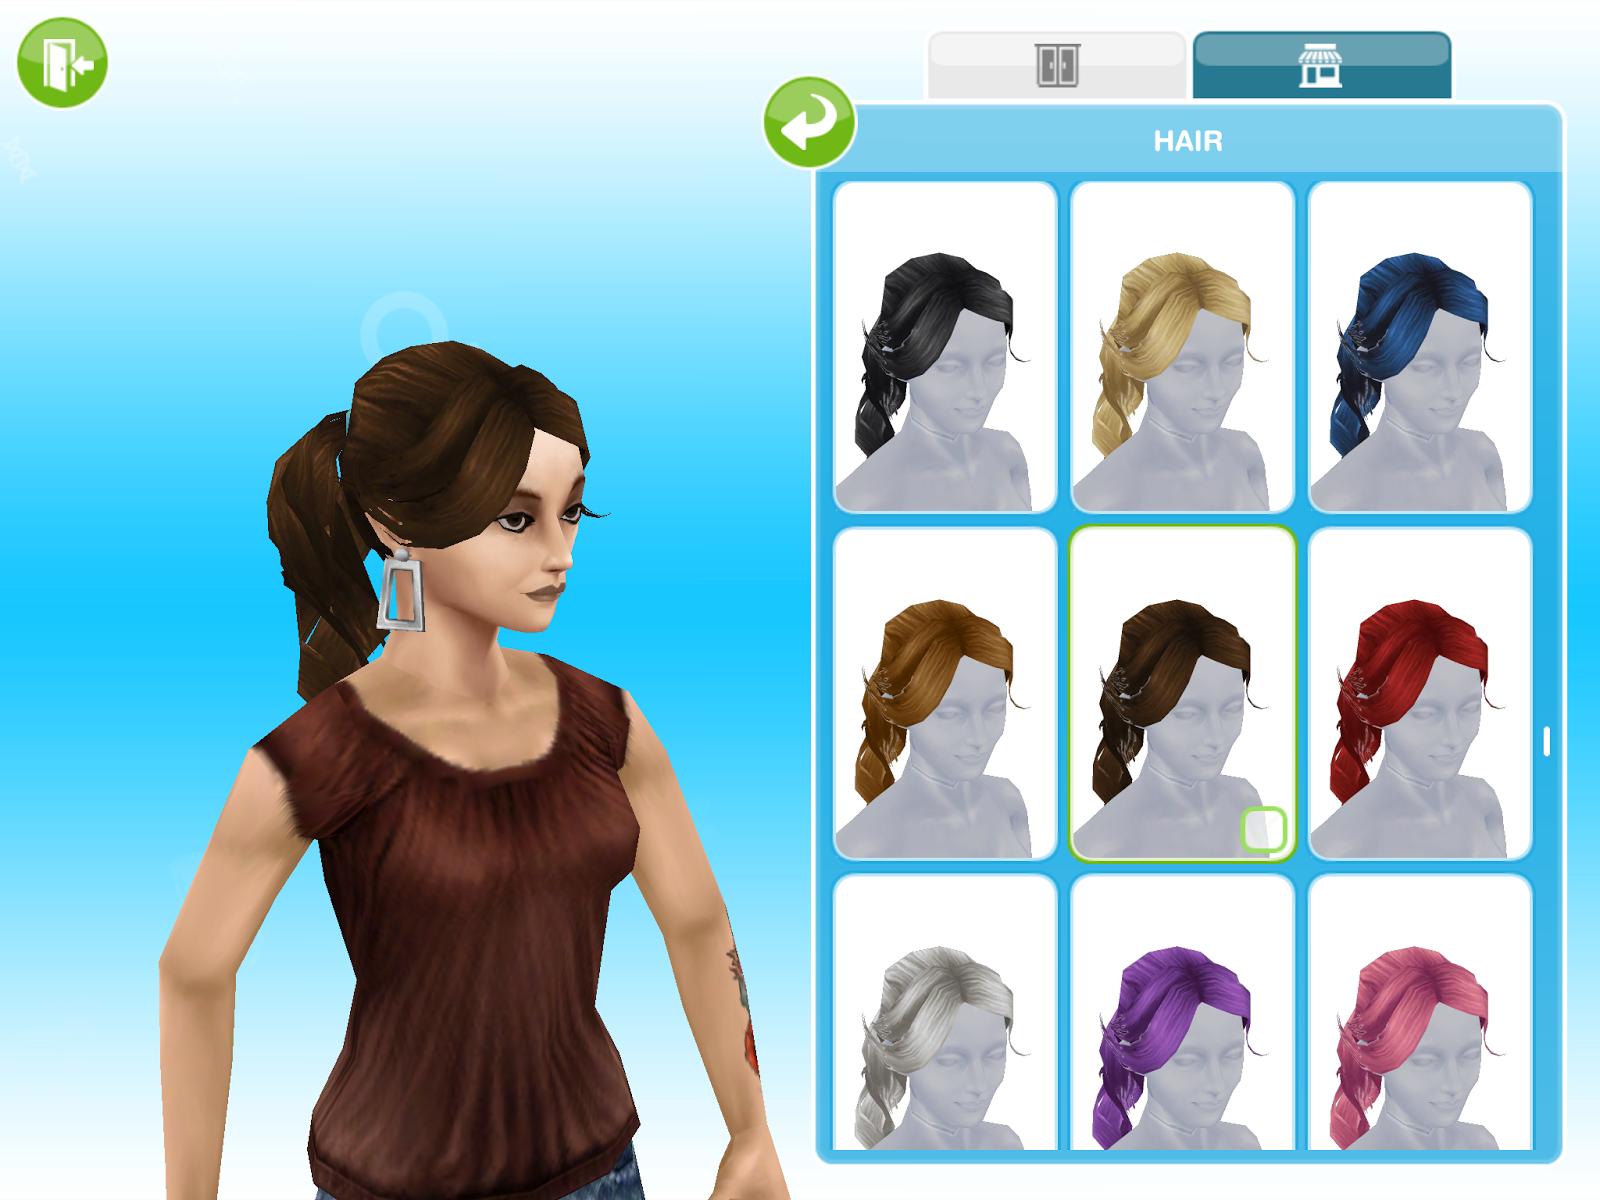 The sims freeplay long hairstyle - Loose Ponytail Hairstyle